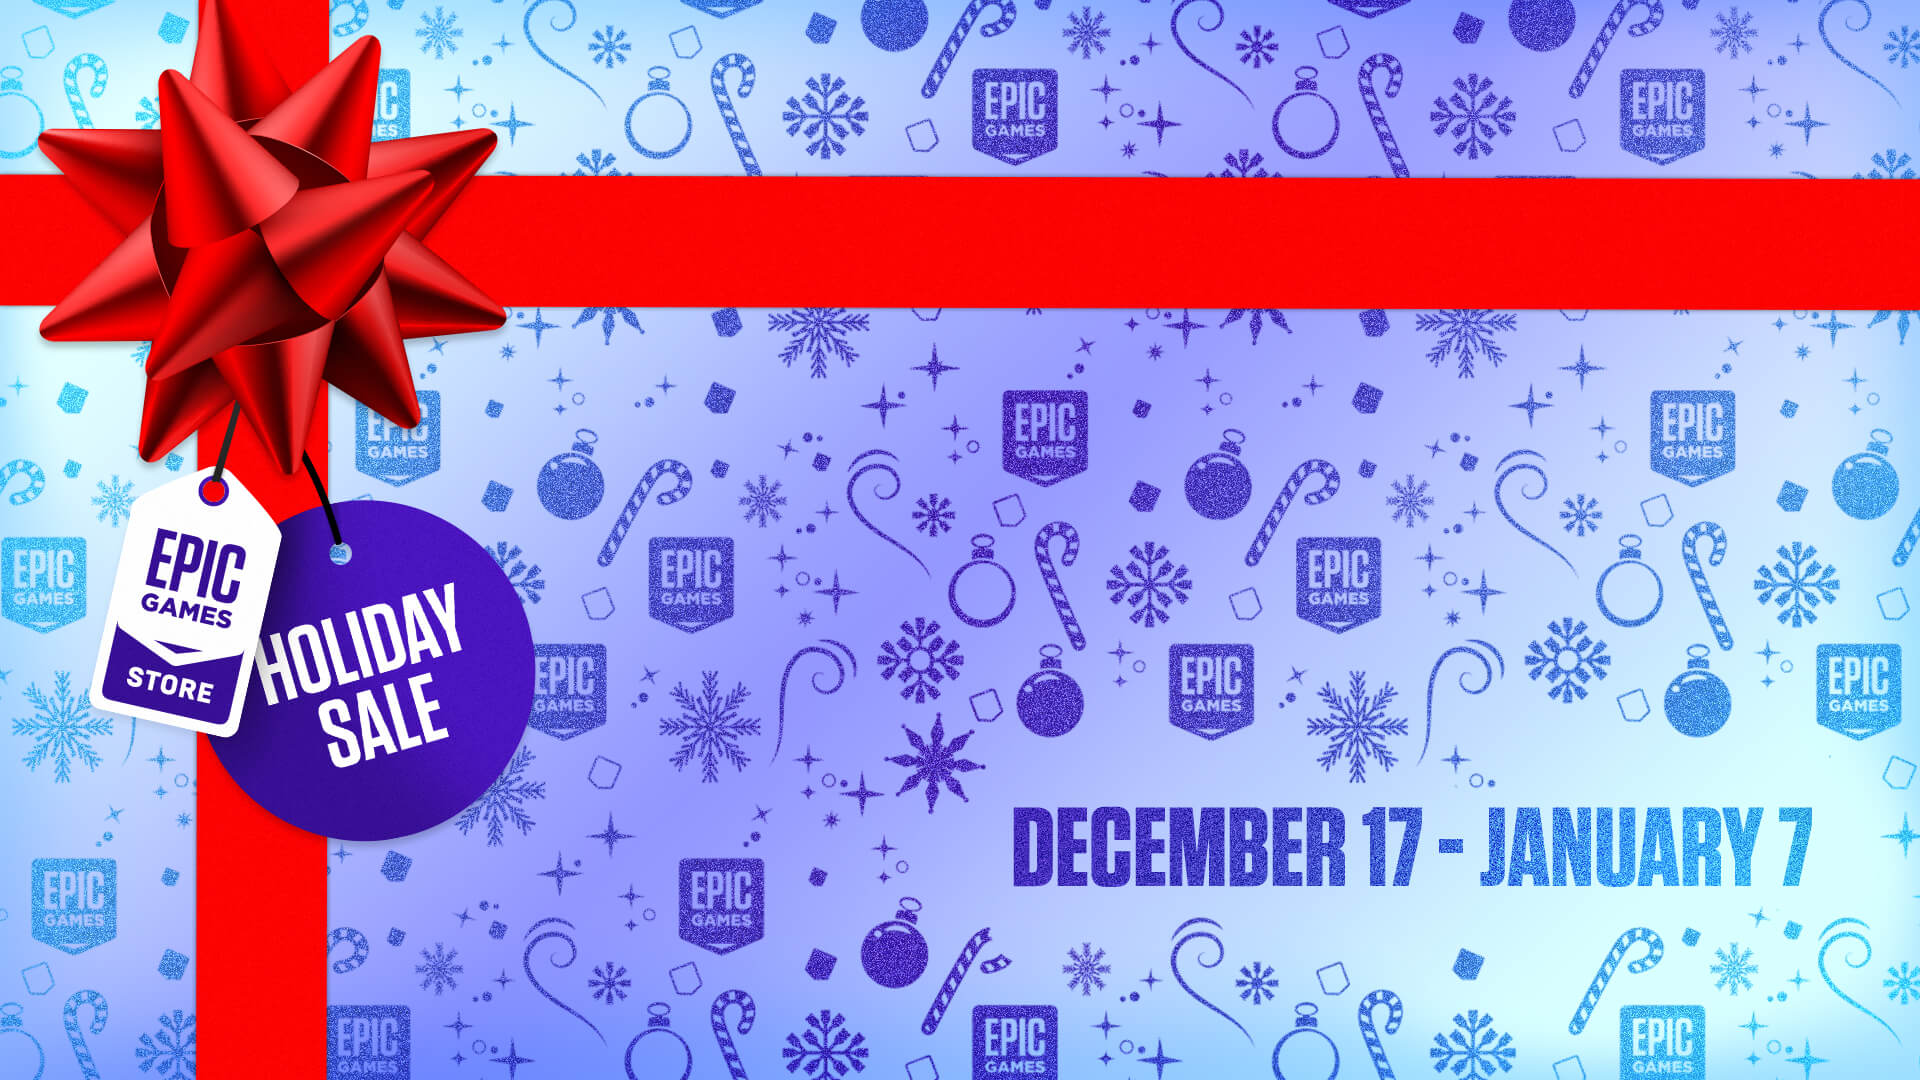 Epic Games Holiday Sale 2020